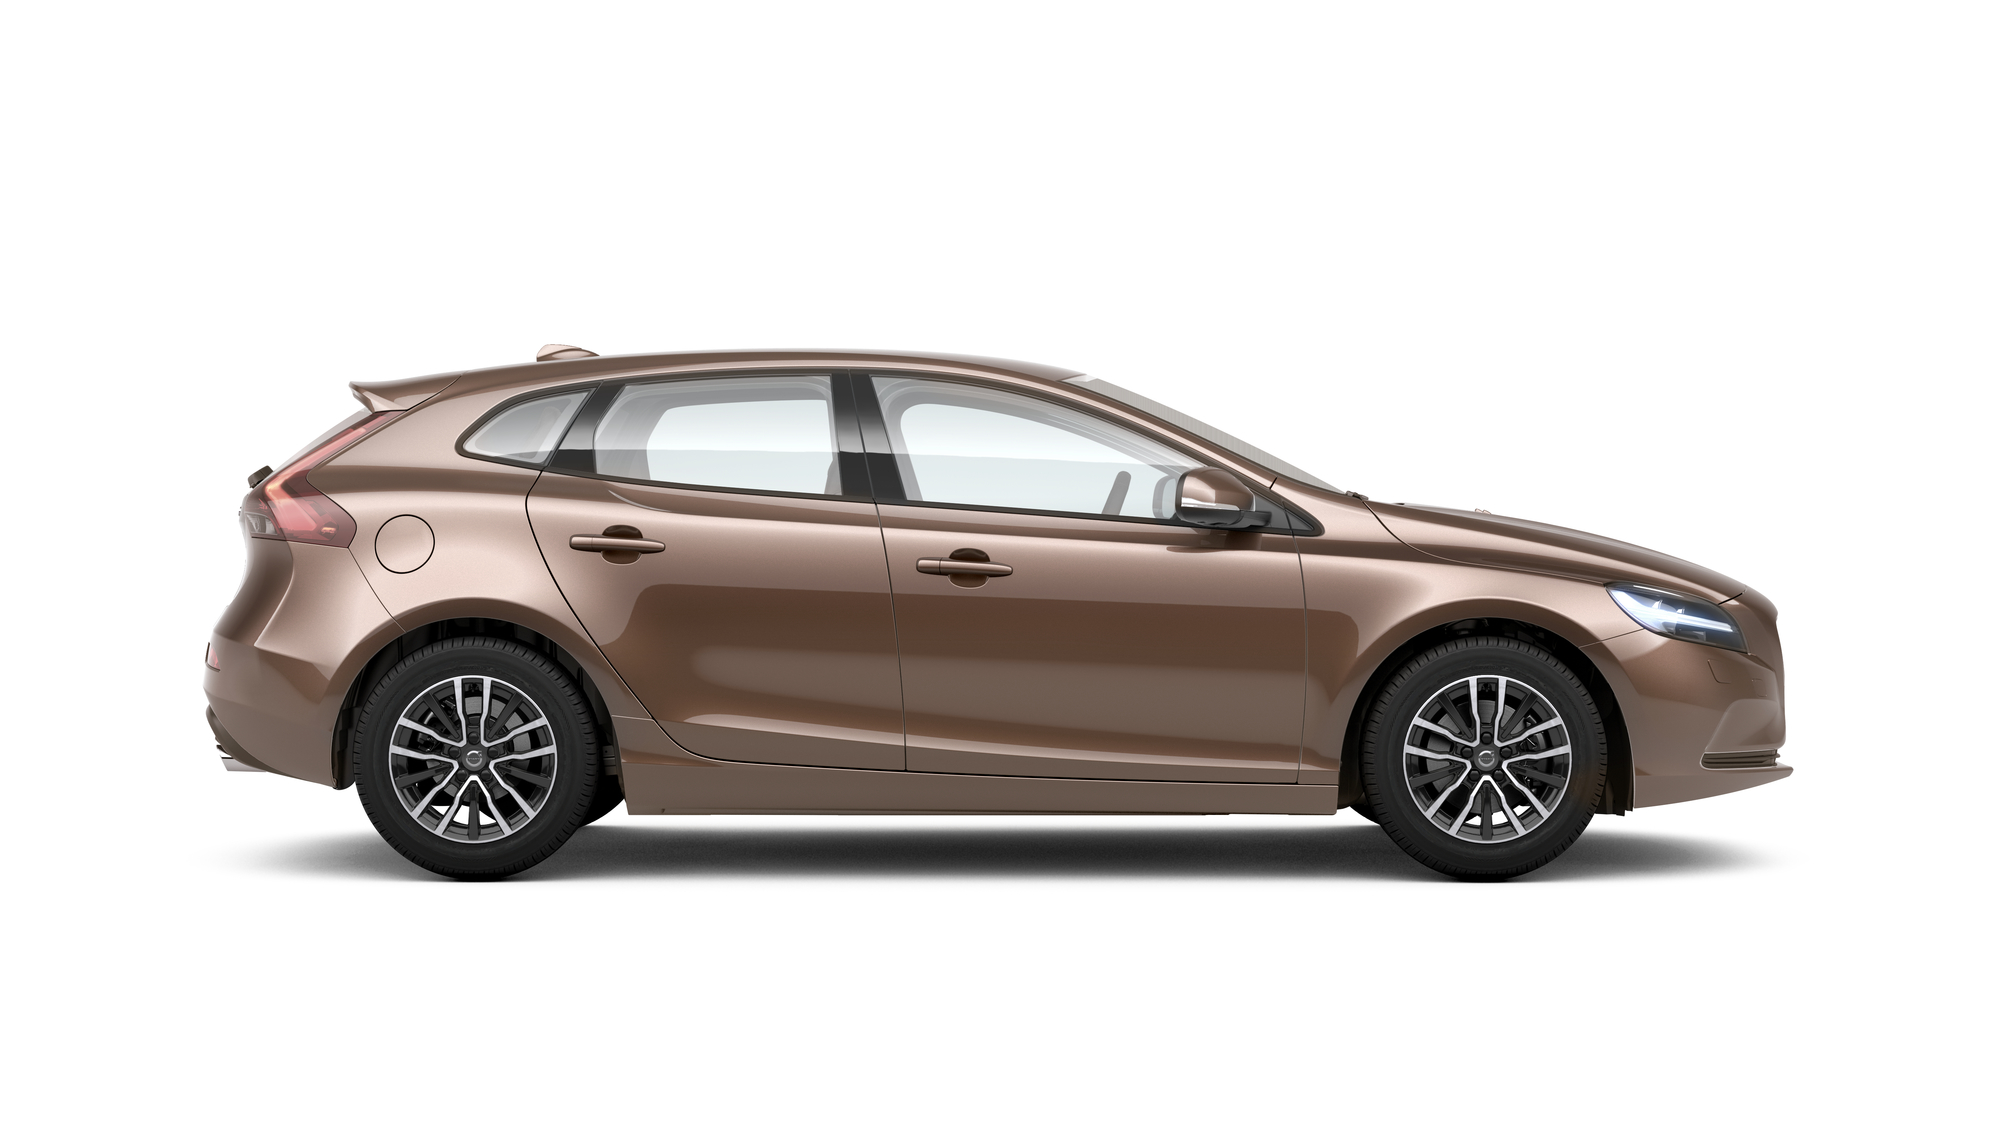 Side photo of the Volvo V40 in Raw Copper